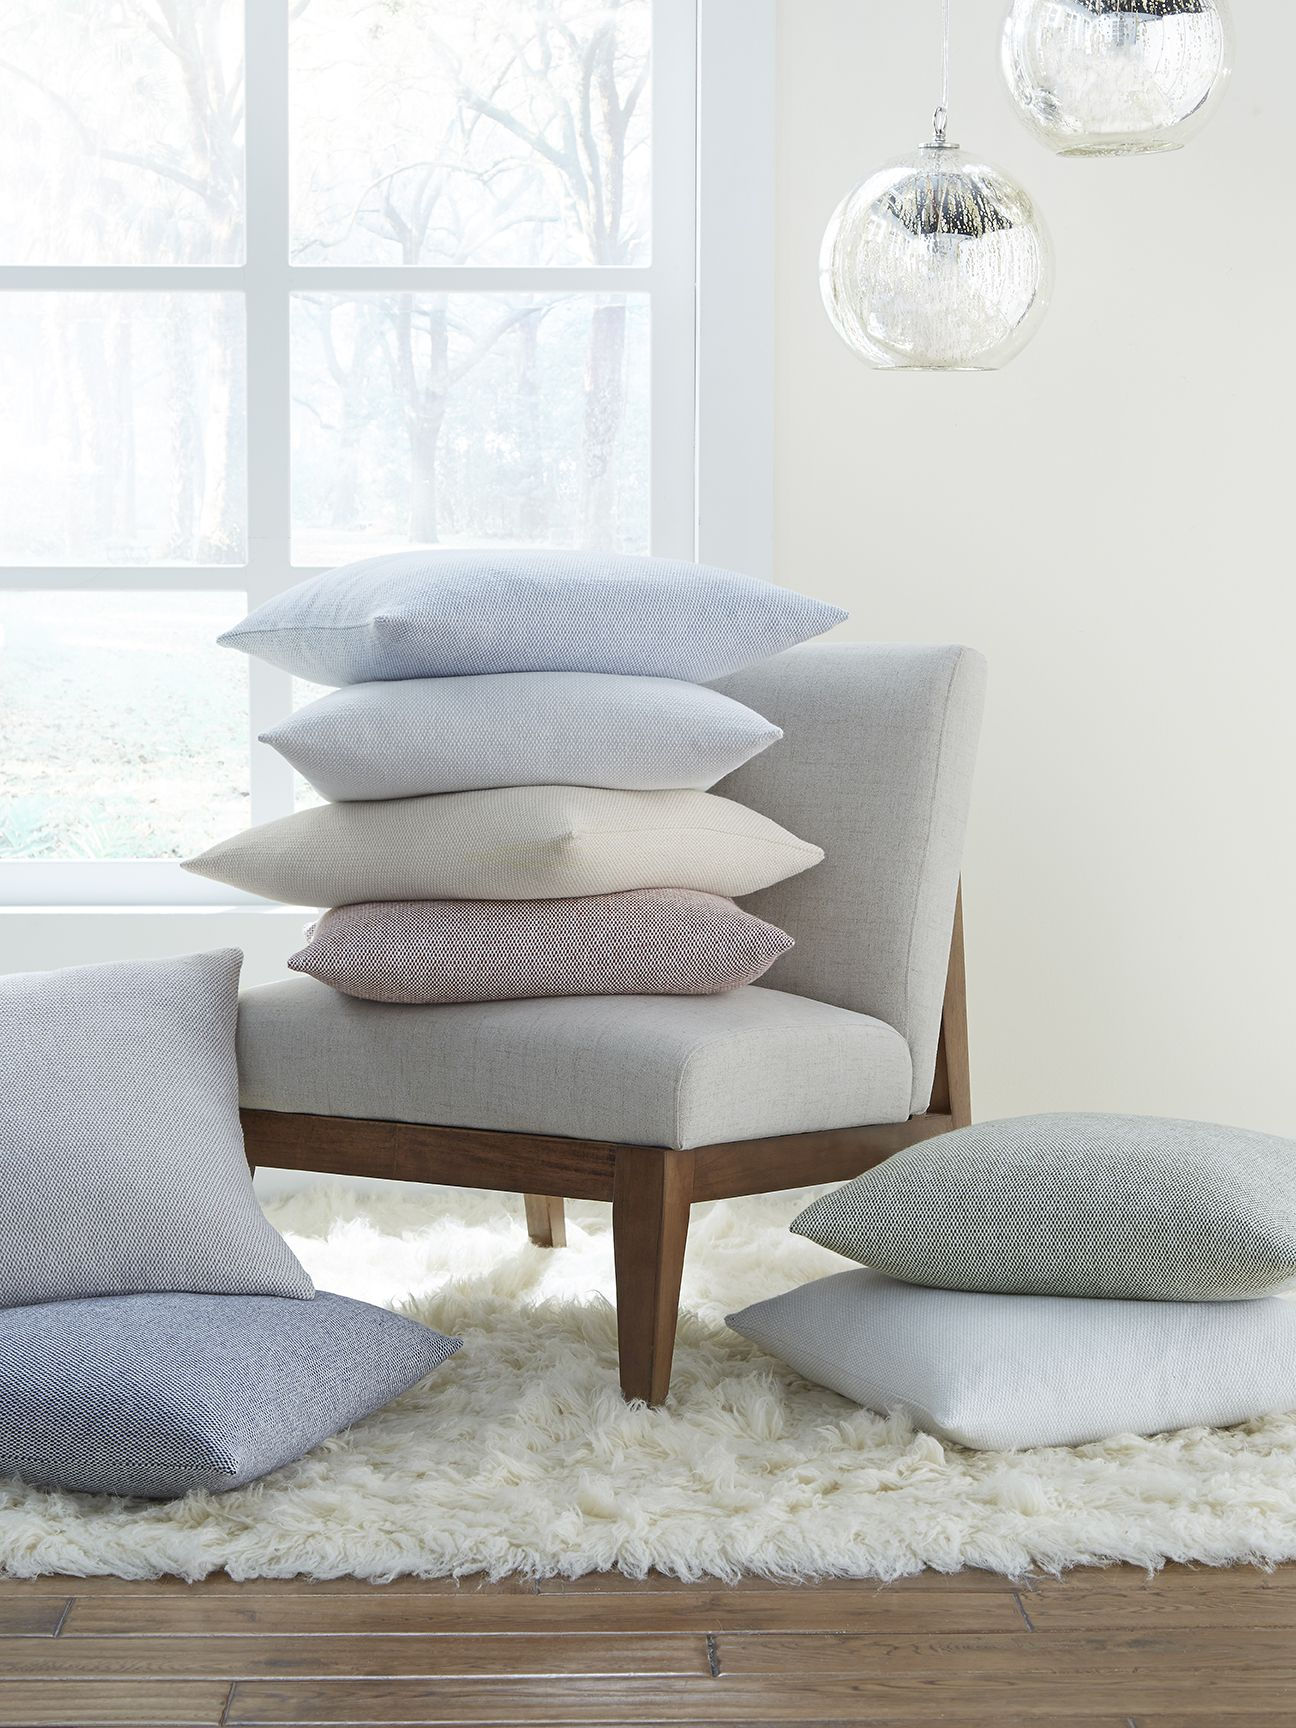 Terzo pillows and throws feature a classic basket weave pattern in soft, versatile colors that are welcoming in any room. Graceful and elegant, it is crafted from pure cotton and the pillows are filled with feather and down.